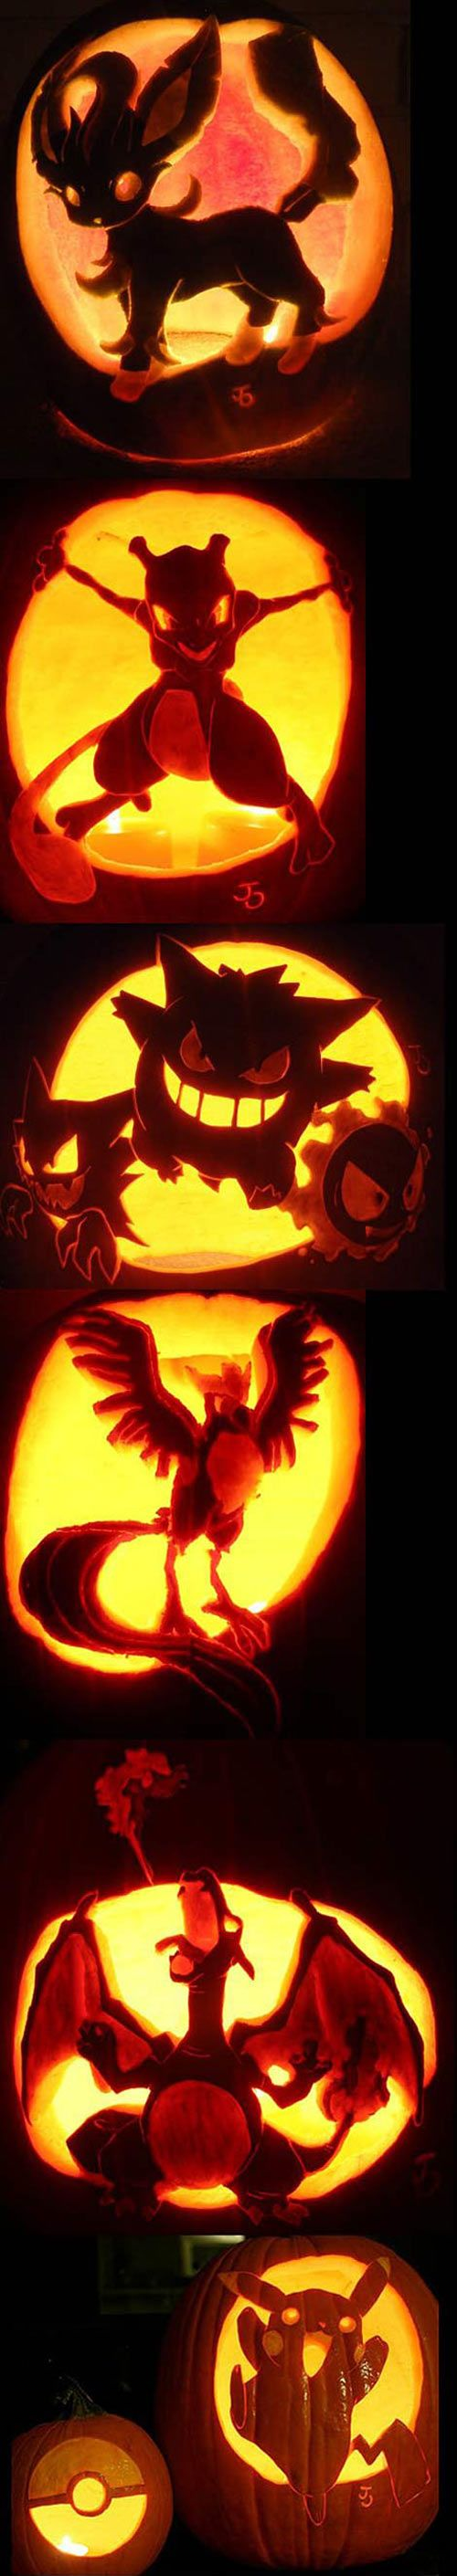 17 Best Images About Pumkin Decorating On Pinterest